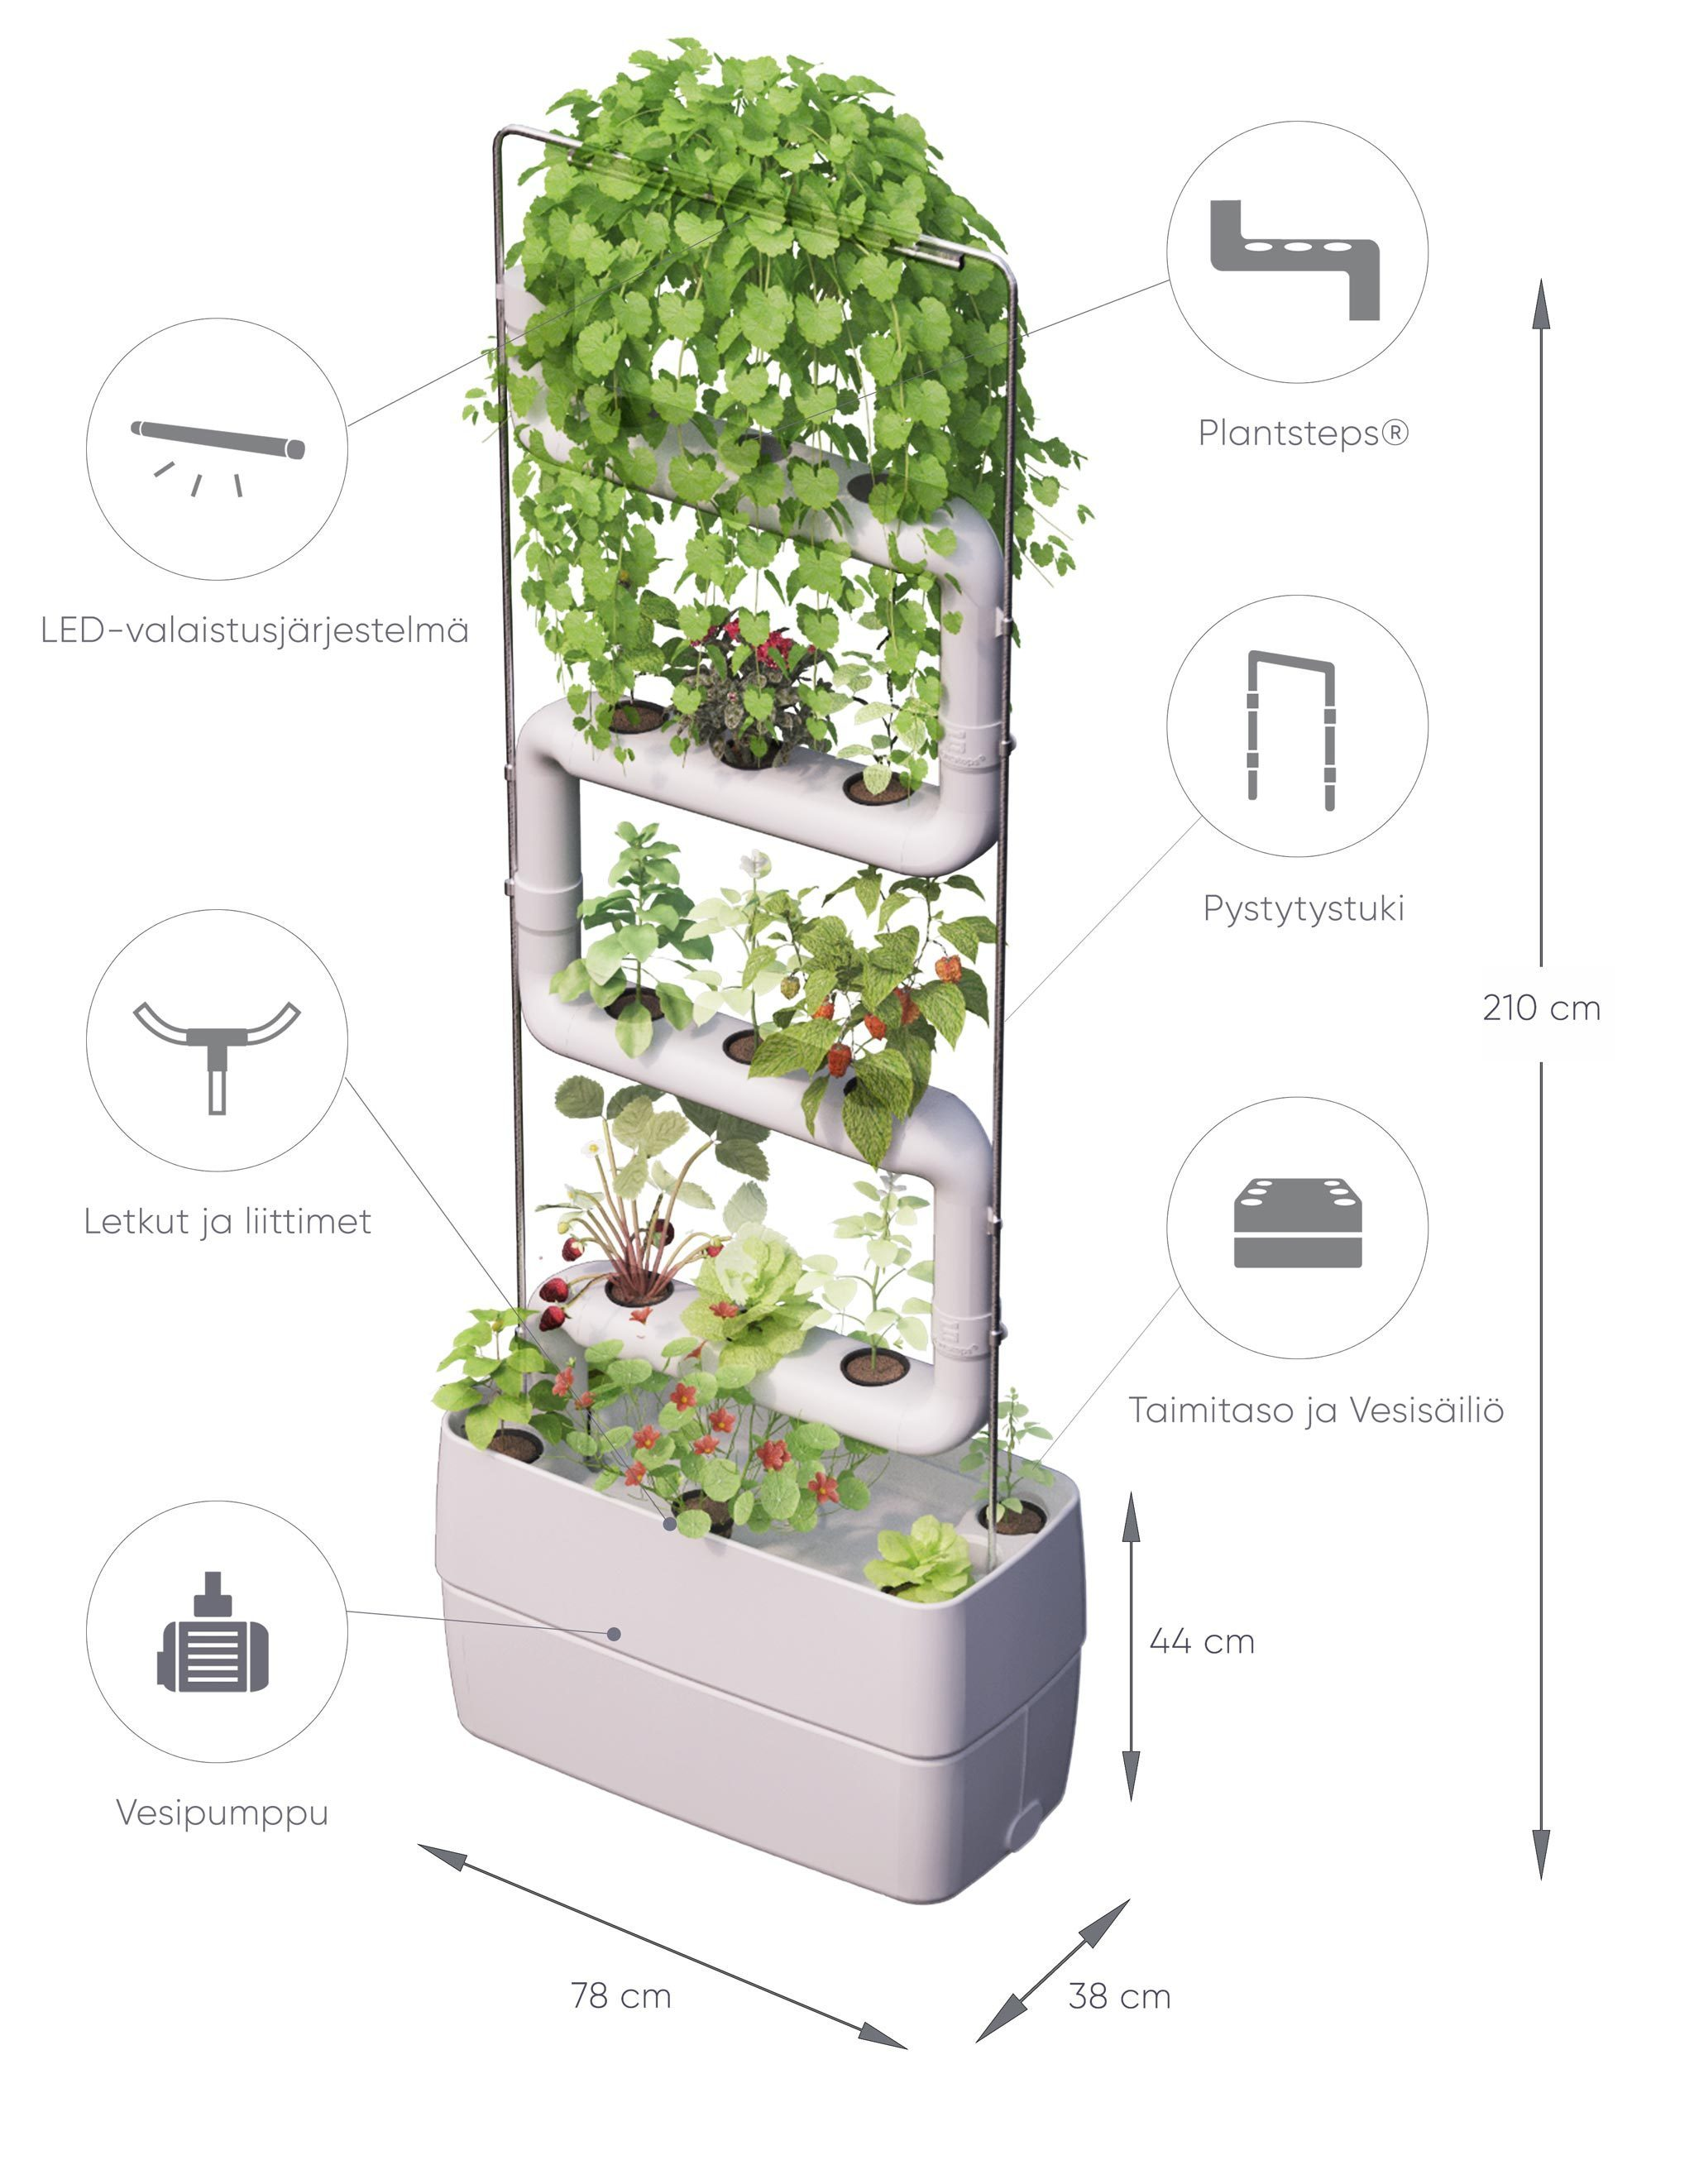 Supragarden The Vertical Hydroponic Garden System For Food Growing And Green Wall Air Cleaning Supragarden Is A New Kind Of Vertical Hydroponic Garden System For Homes And Offices Now It